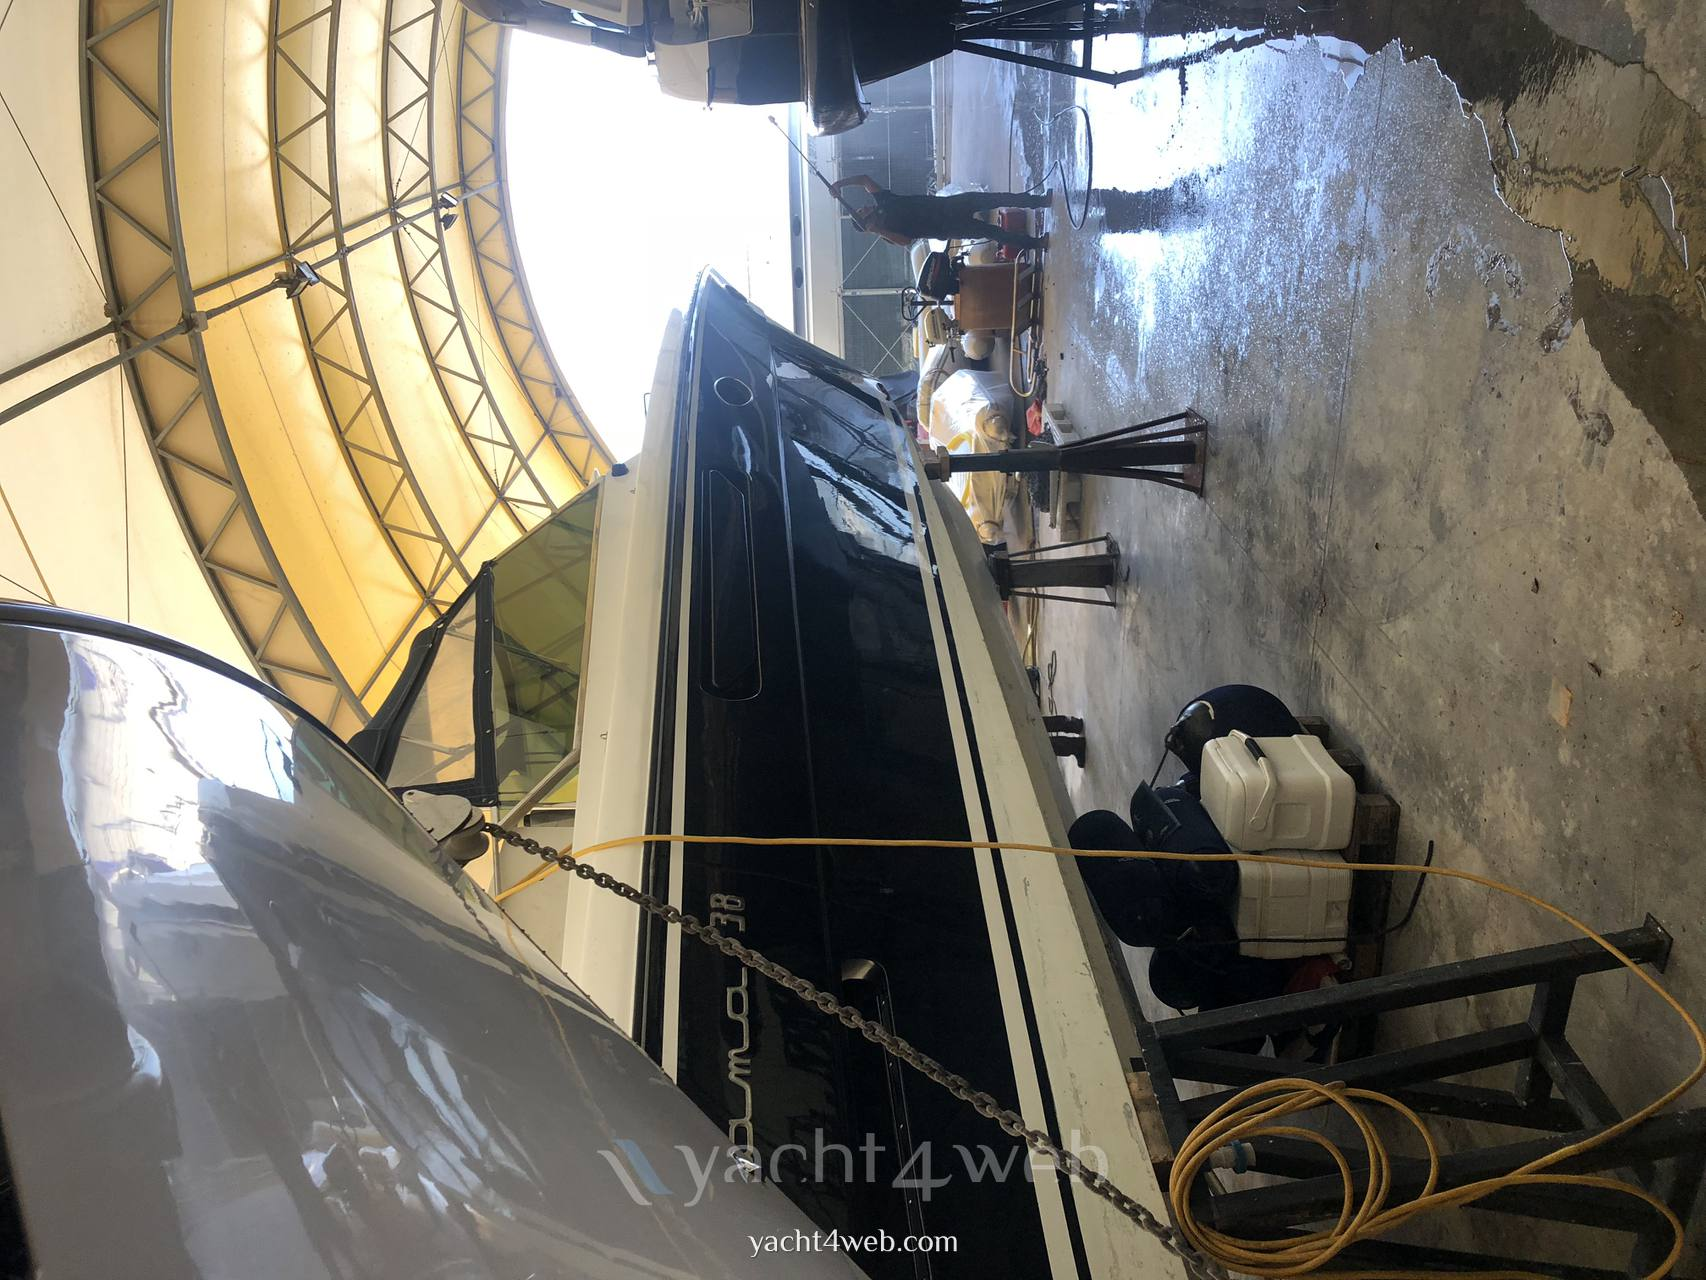 Itama 38 Motor boat used for sale